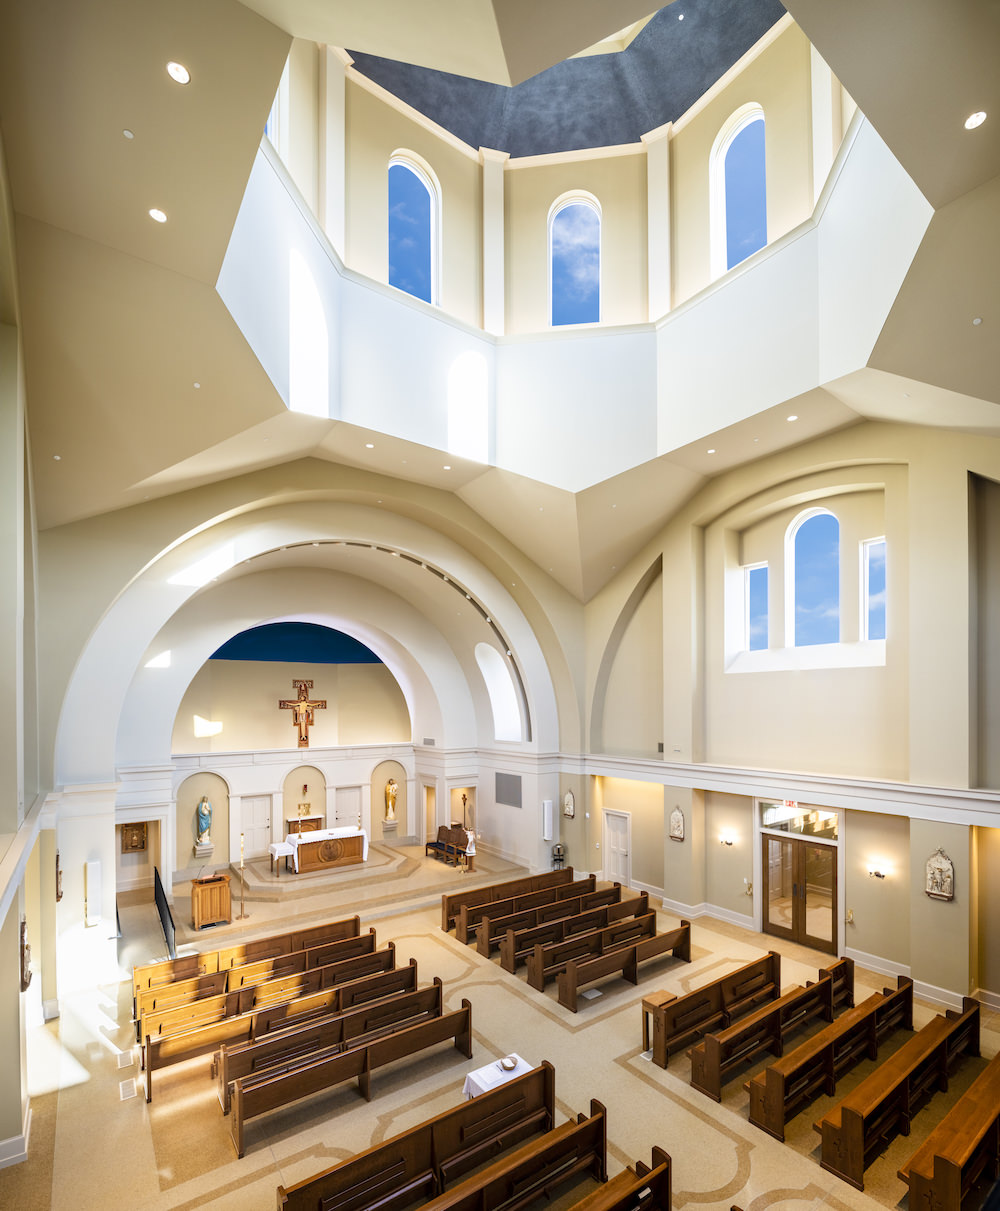 Architecture Interior, Place of Worship, Church, Chapel, Sanctuary, Vertical Panorama